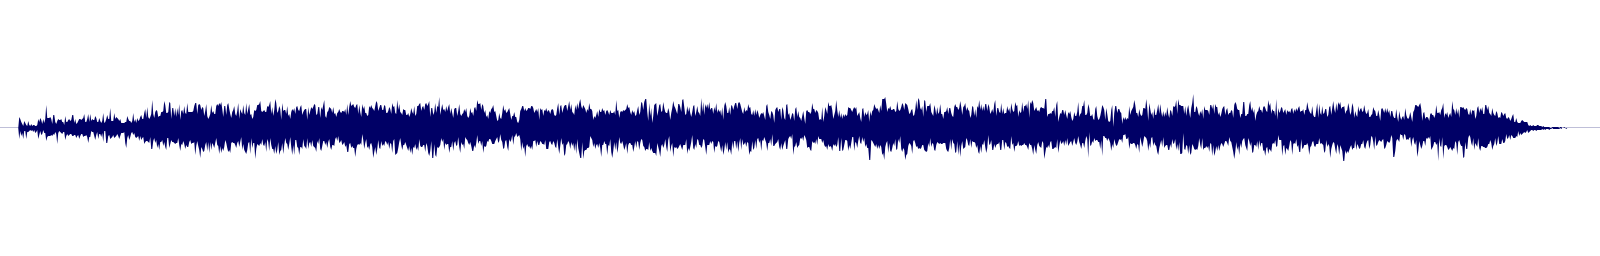 waveform of track #150343